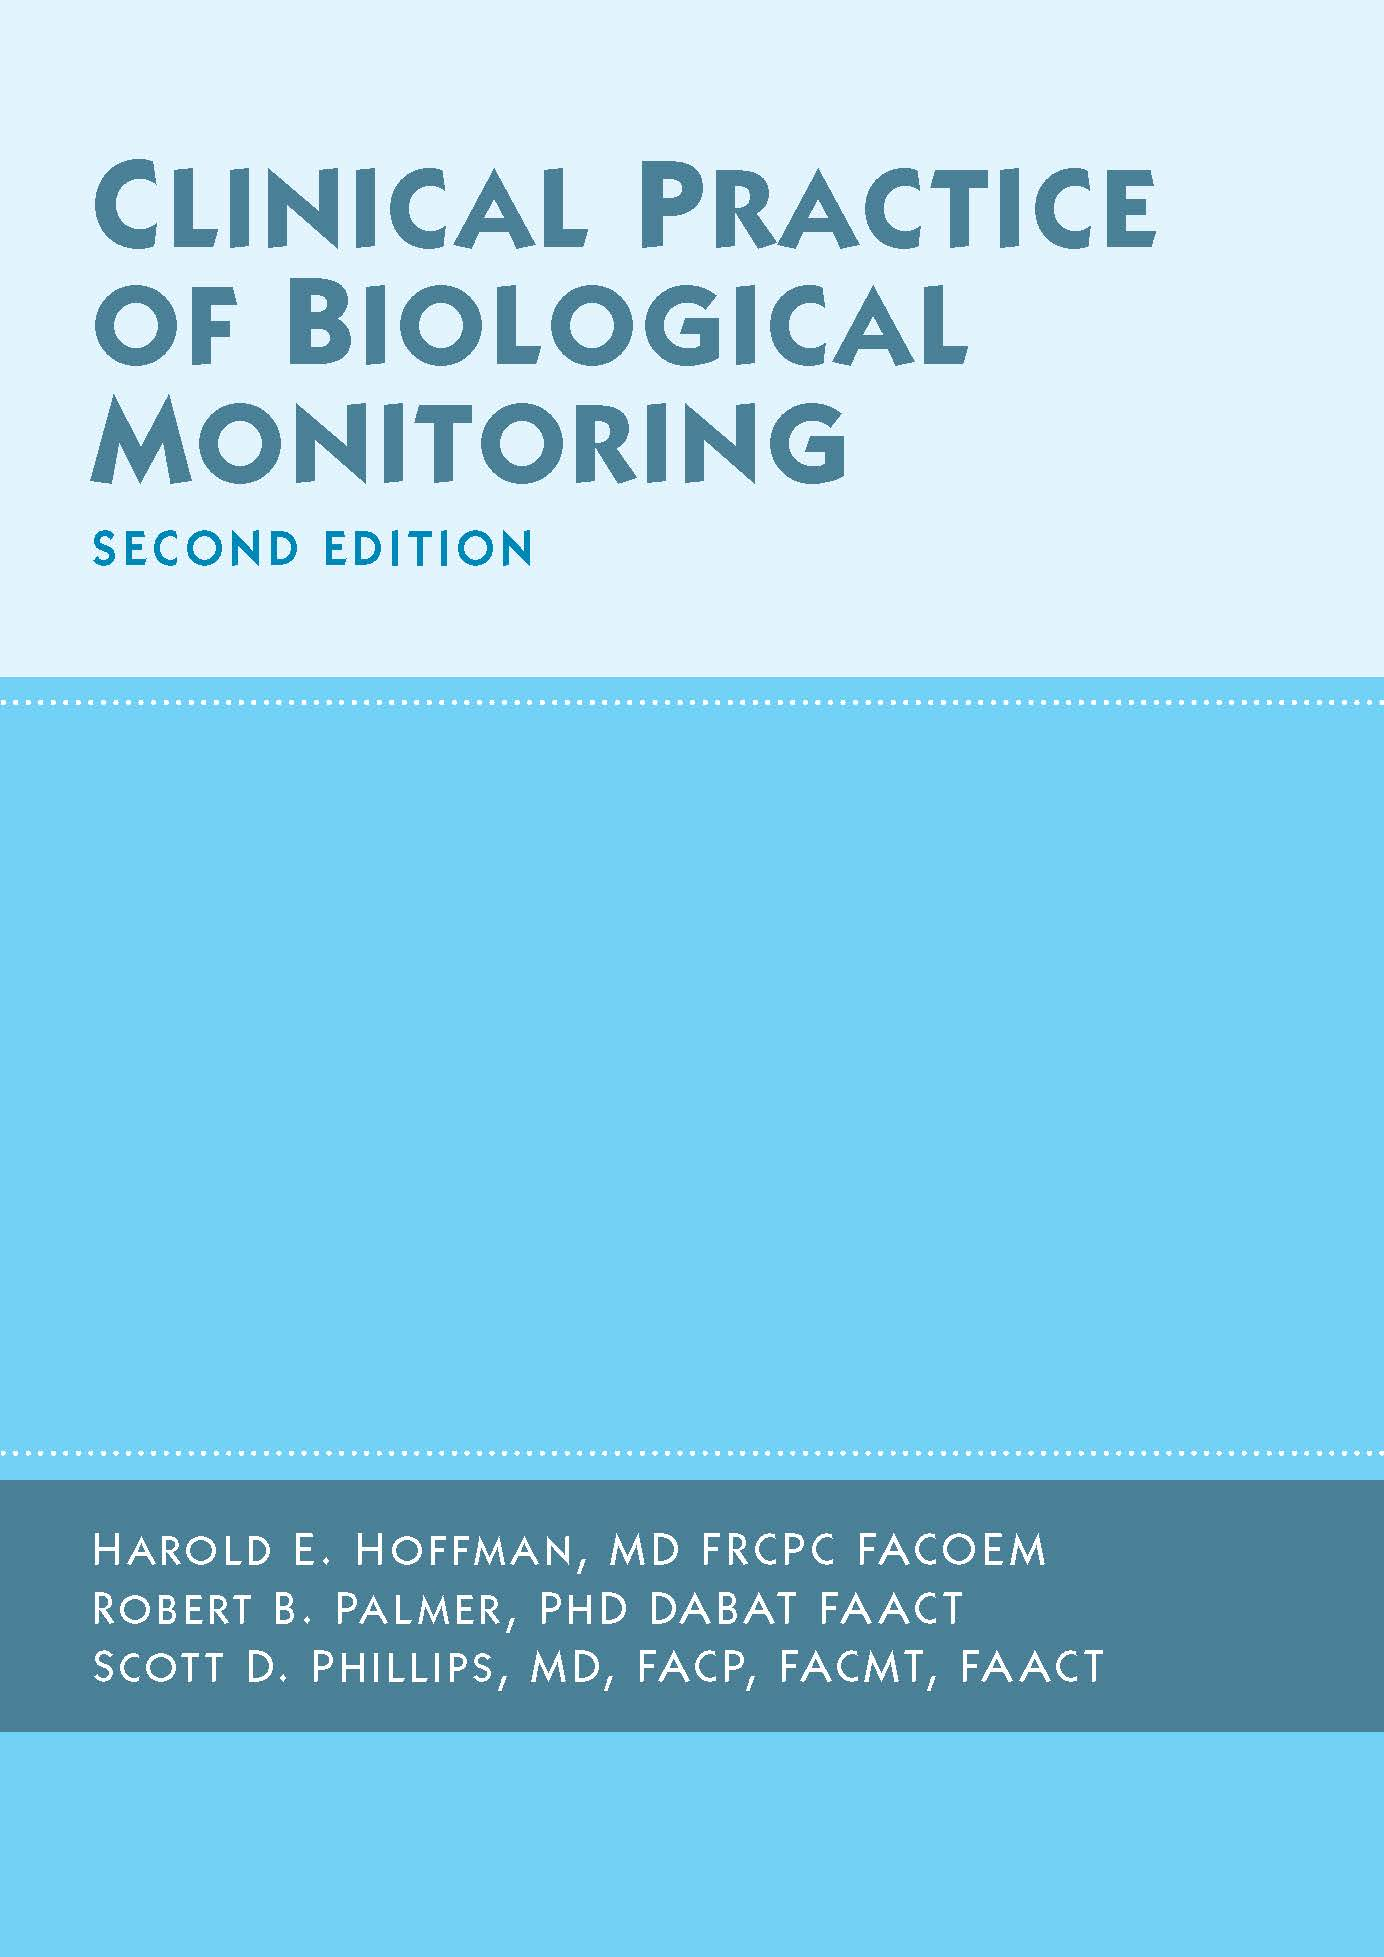 Clinical Practice of Biological Monitoring, Second Edition cover image